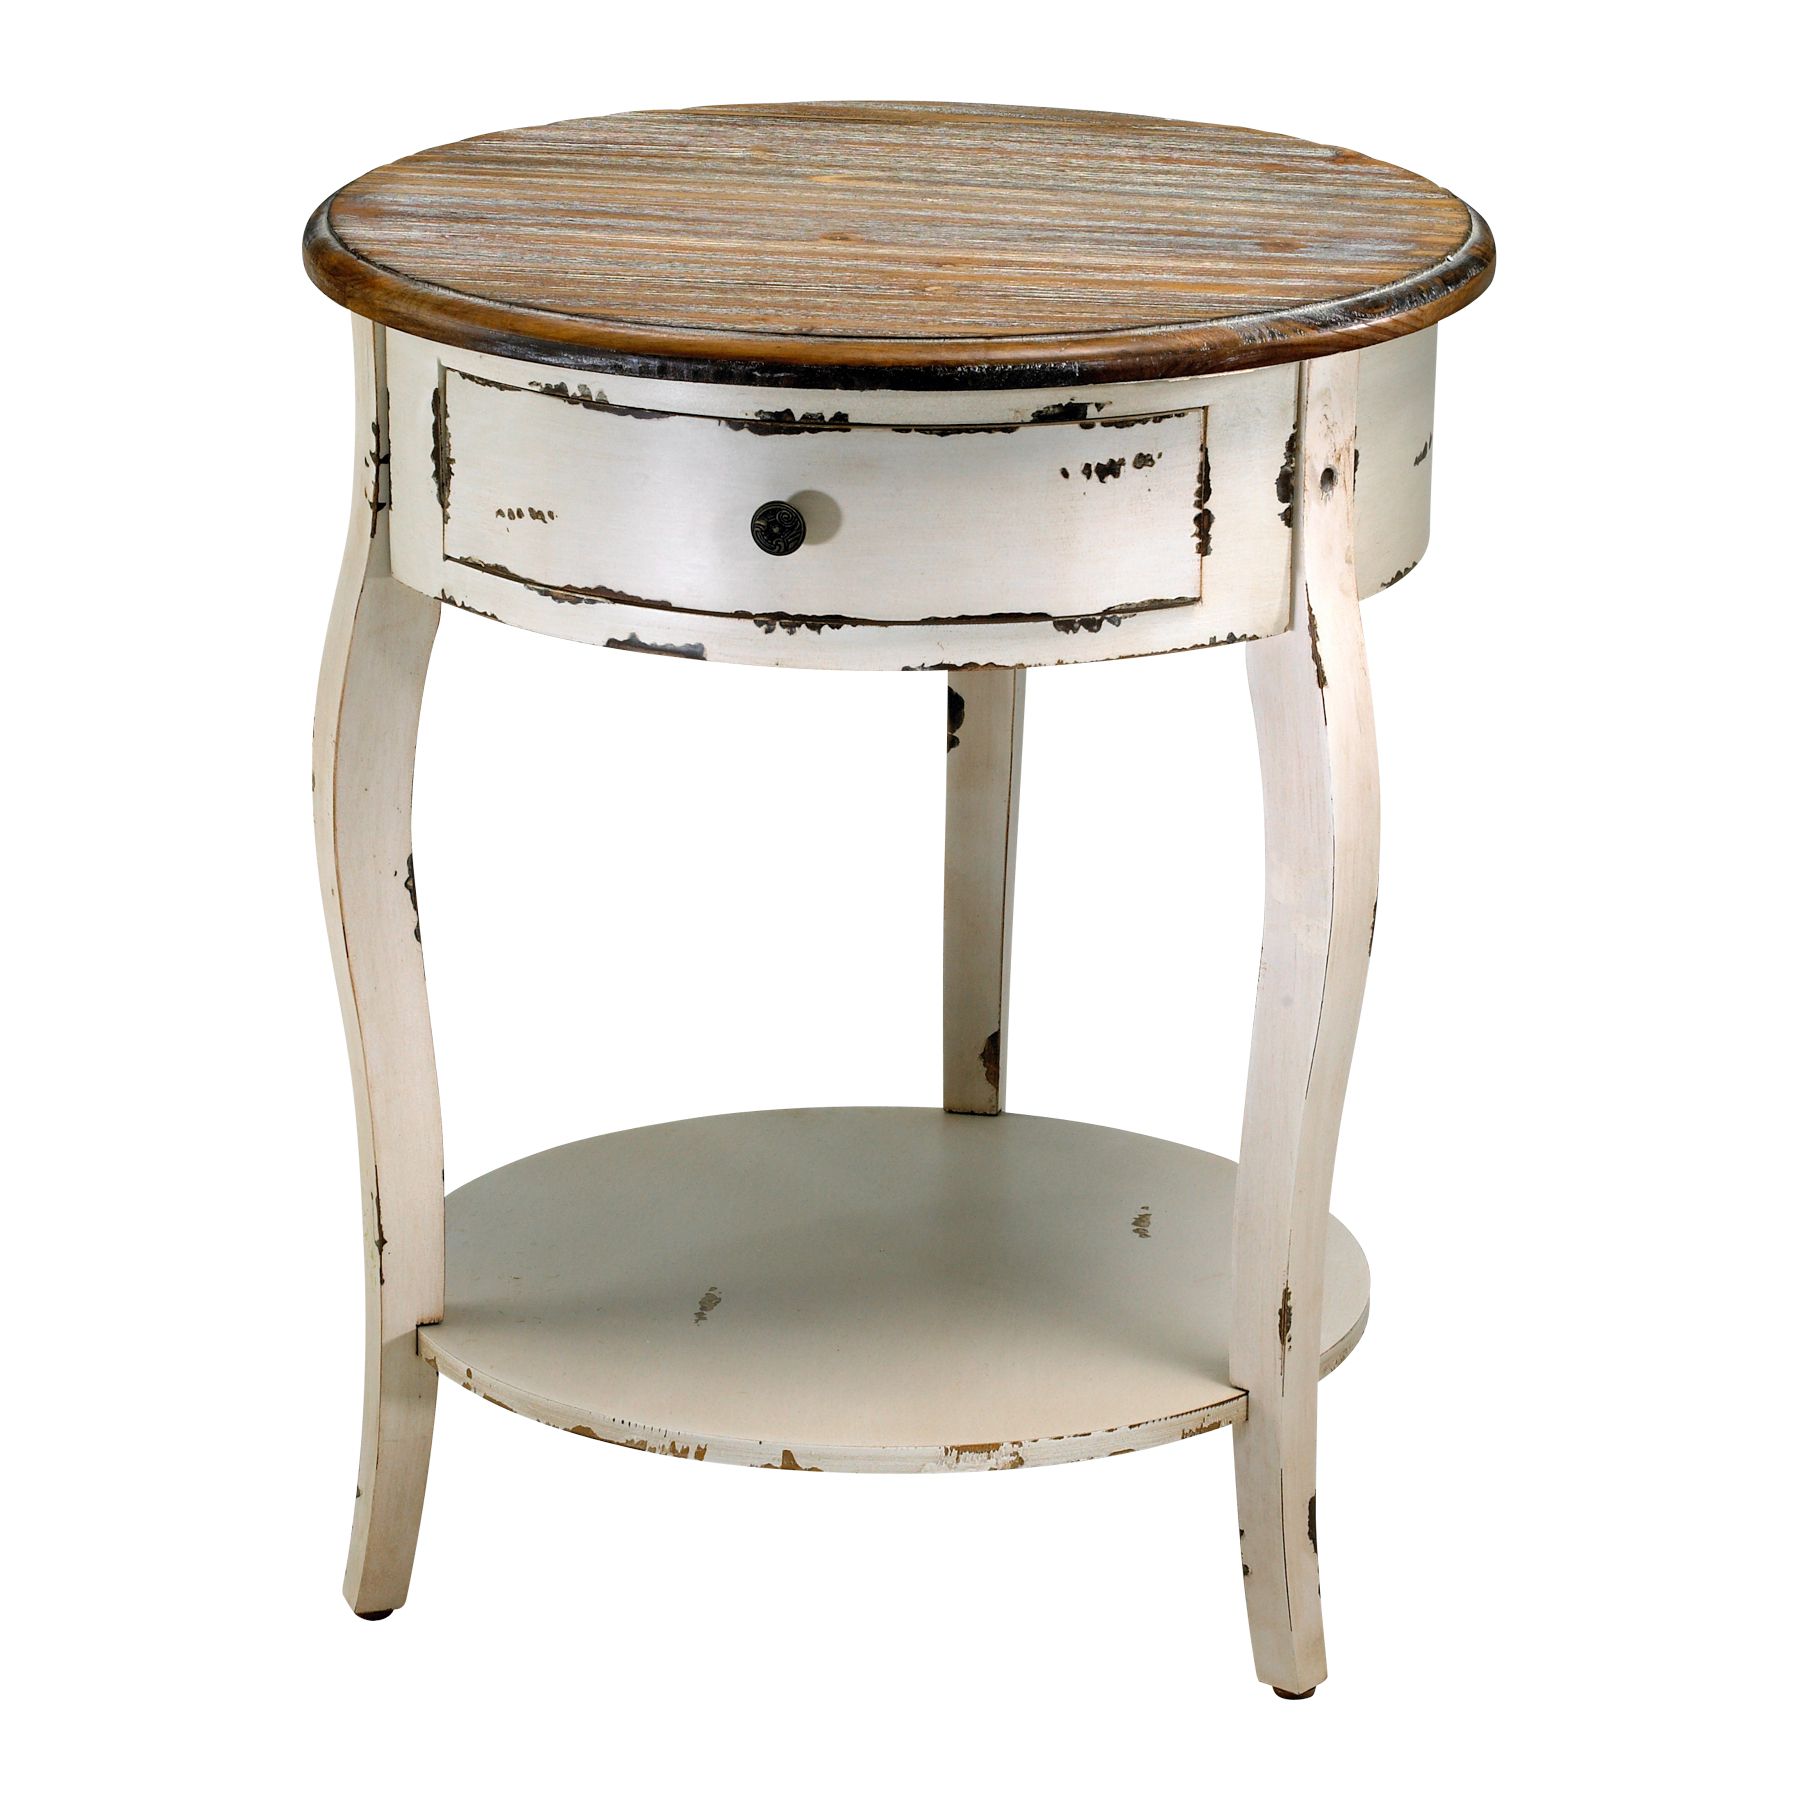 probably fantastic best round end table drawer ture jockboymusic solid wood accent tables one target pressed unfinished slate top console design with legs that slide under couch